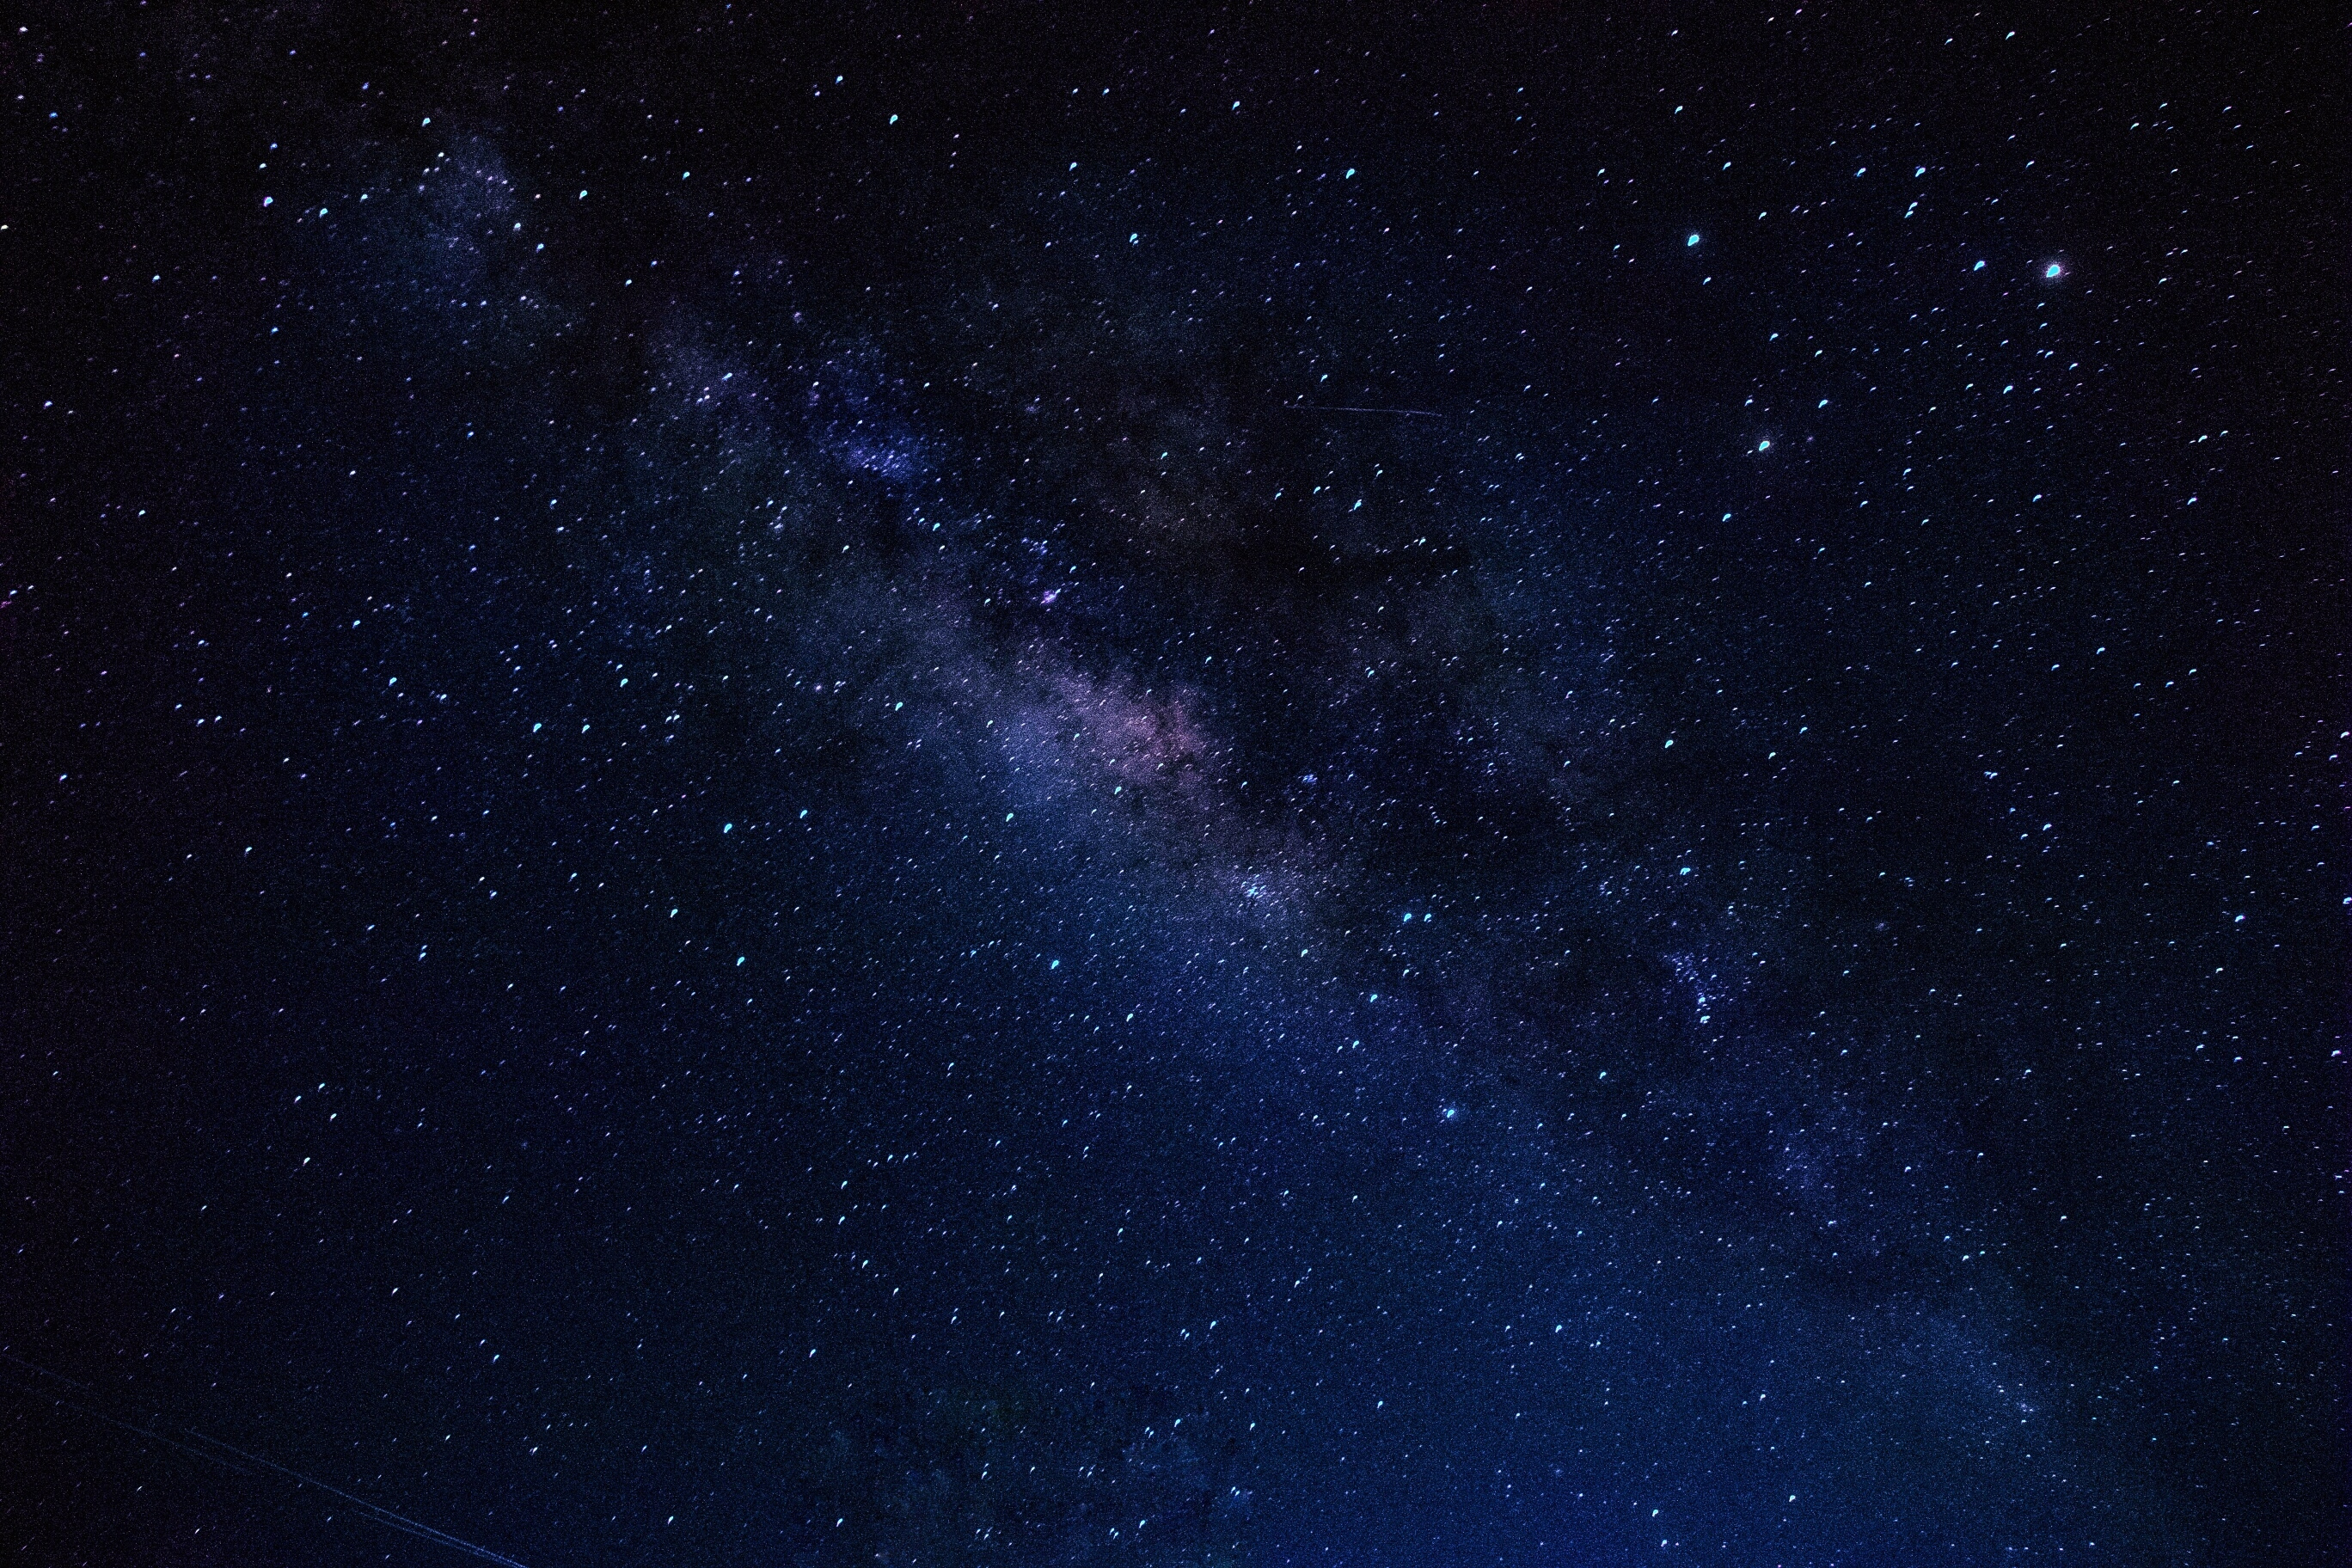 Low Angle View Of Star Field